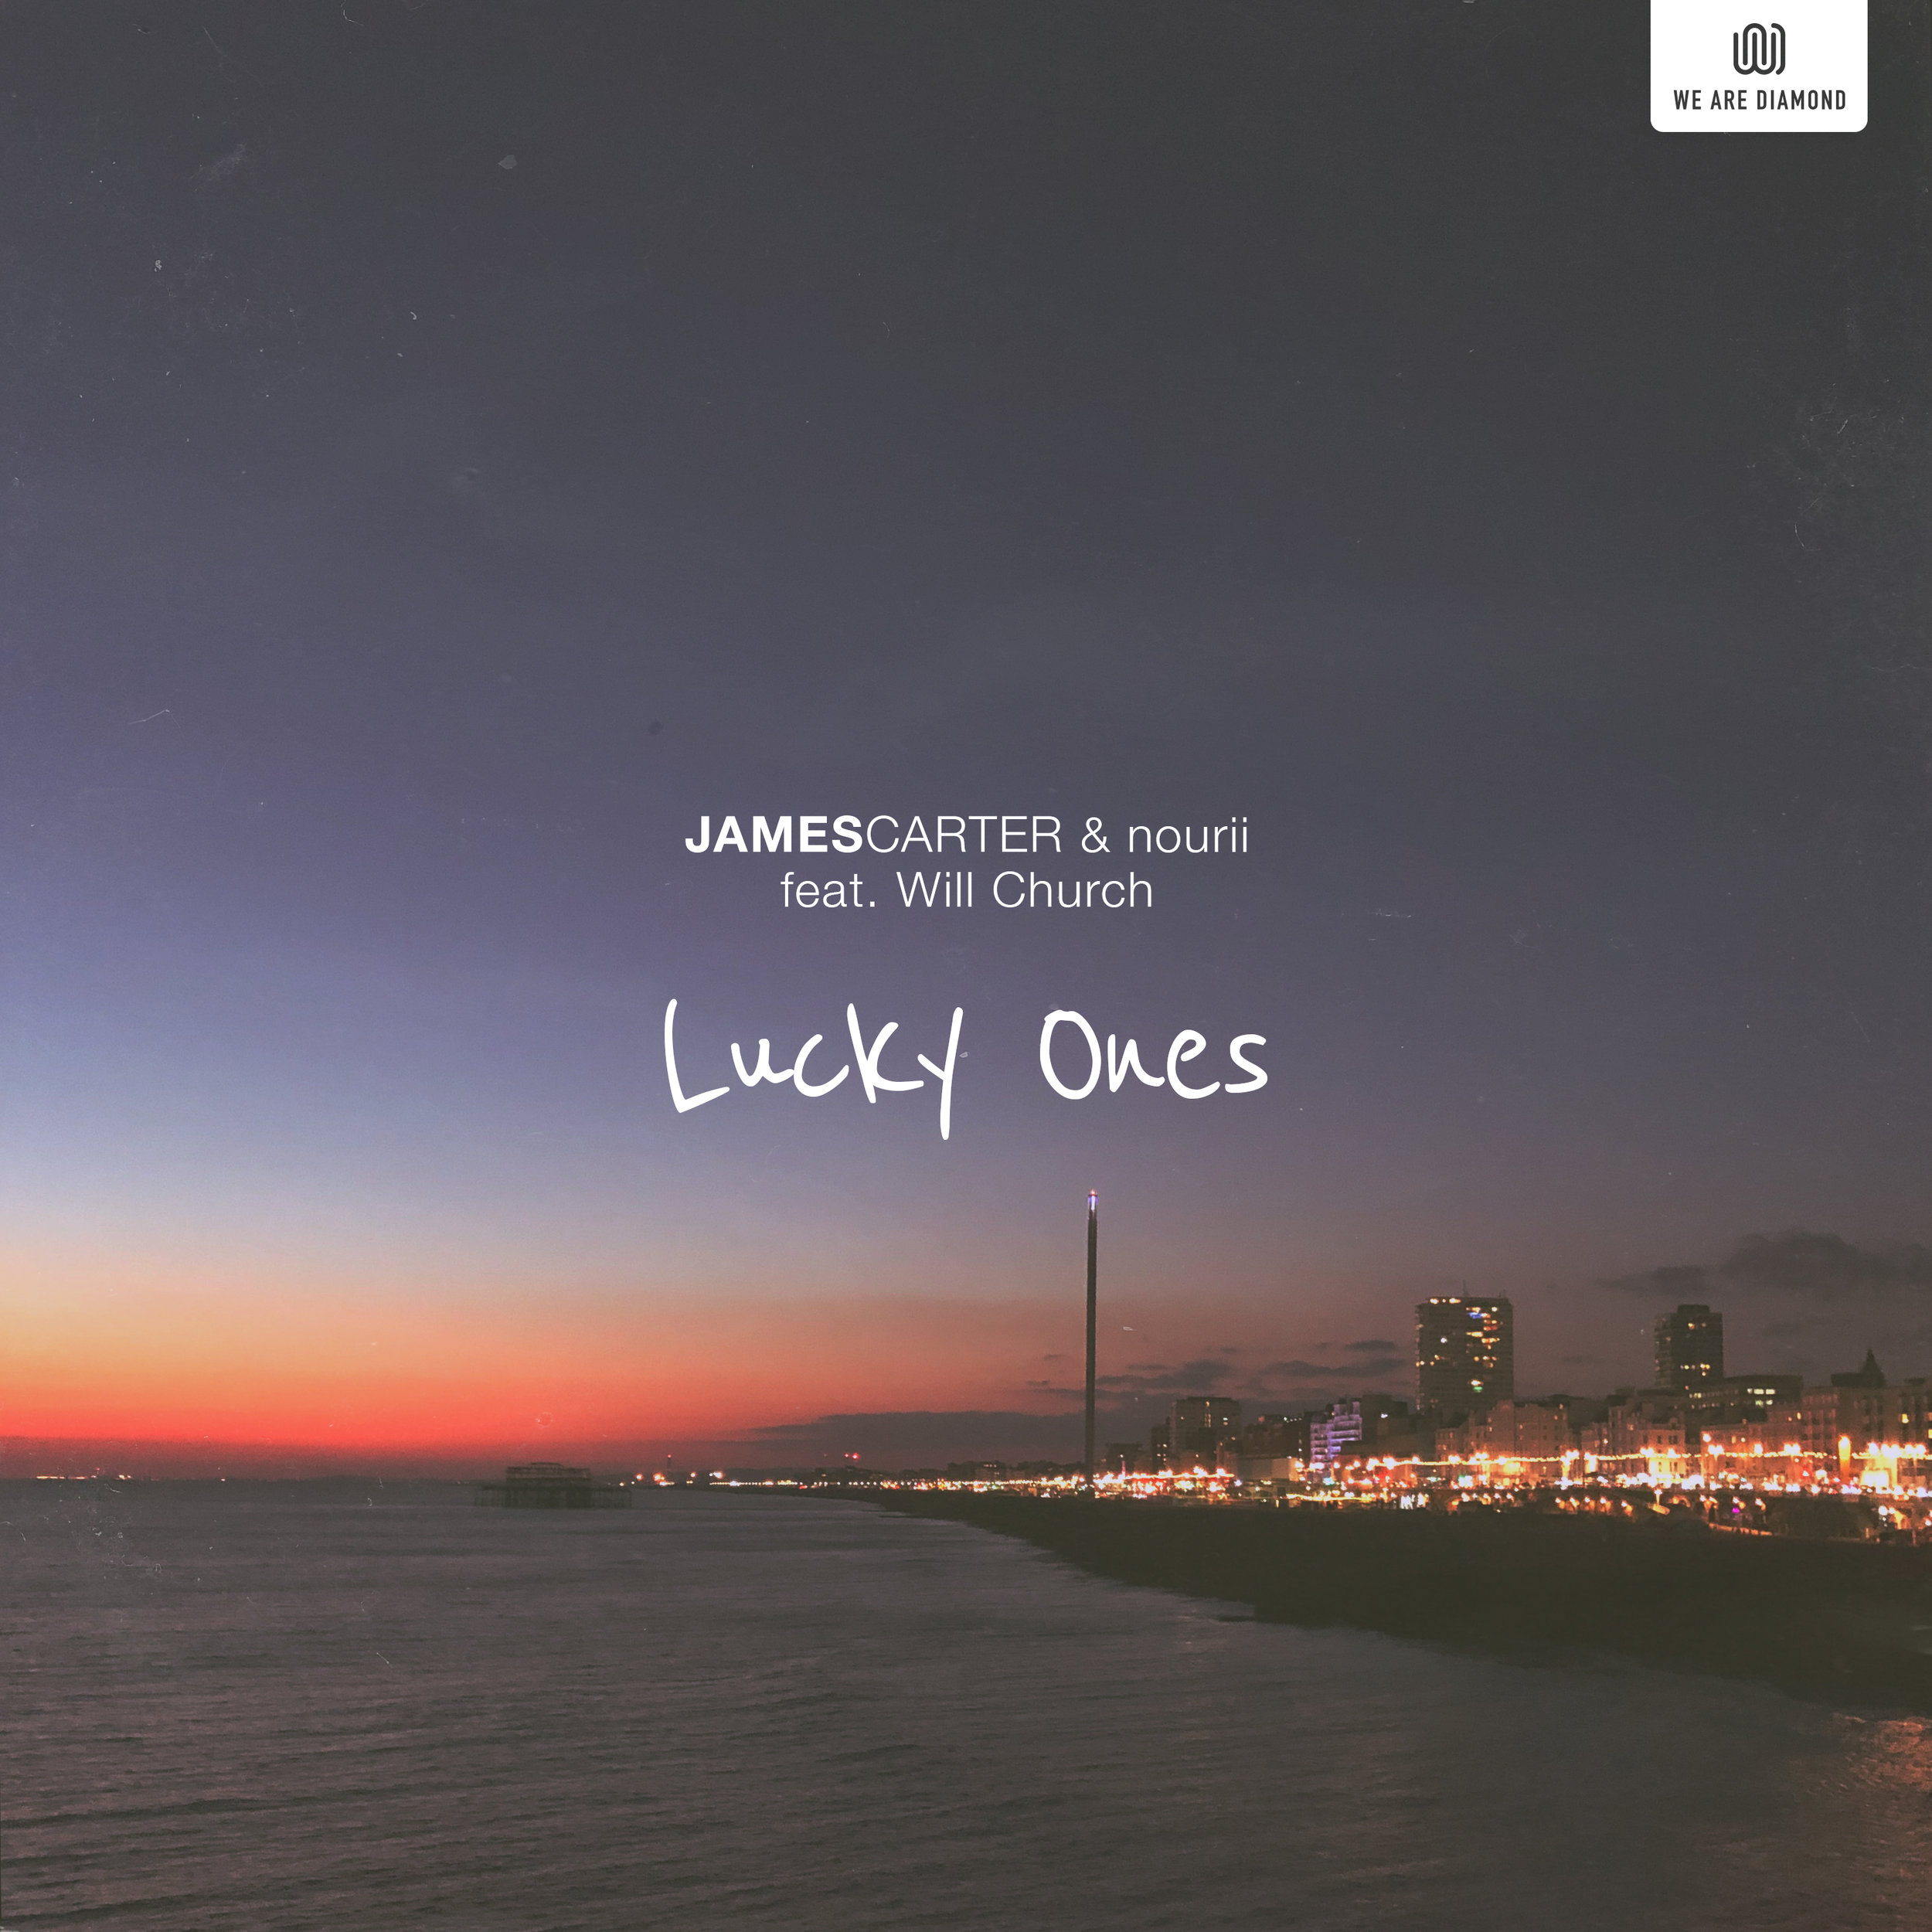 Lucky Ones (feat. Will Church)